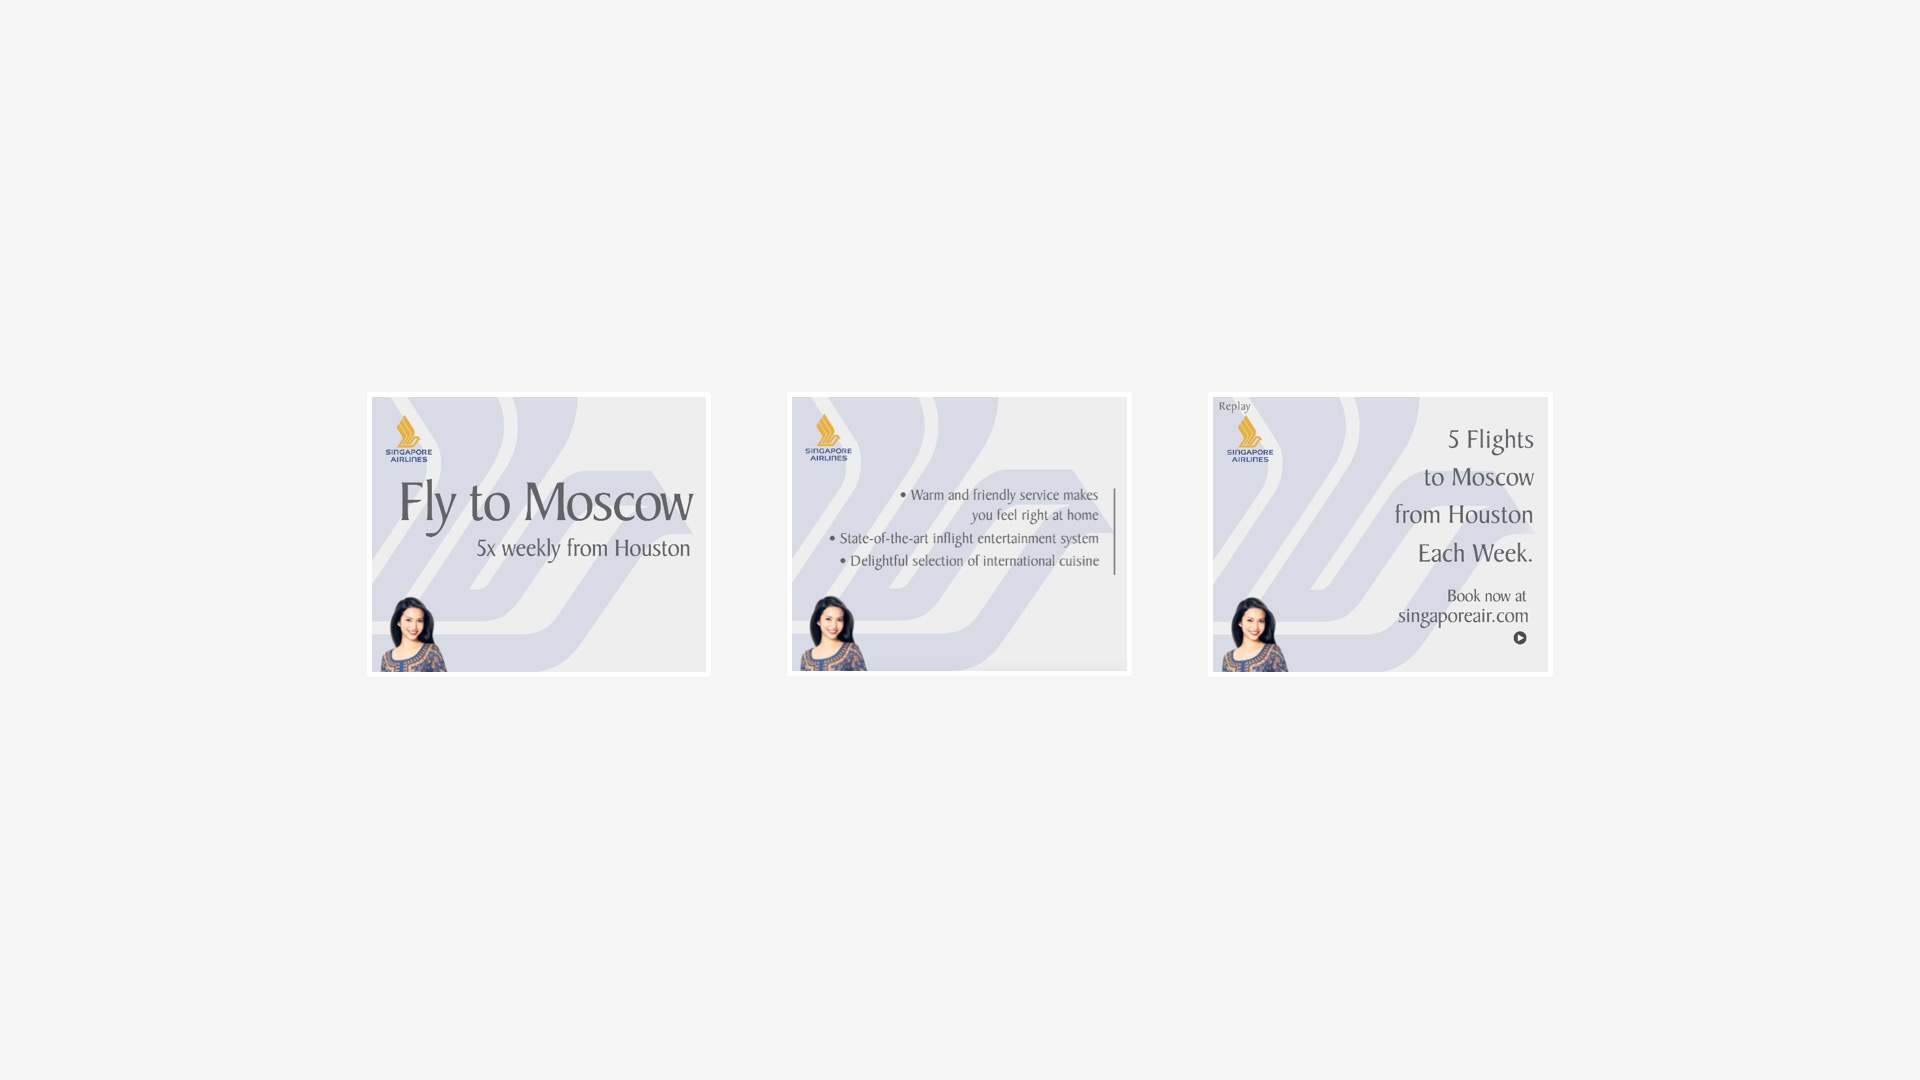 Singapore Airlines: Moscow Destination Campaign Banners